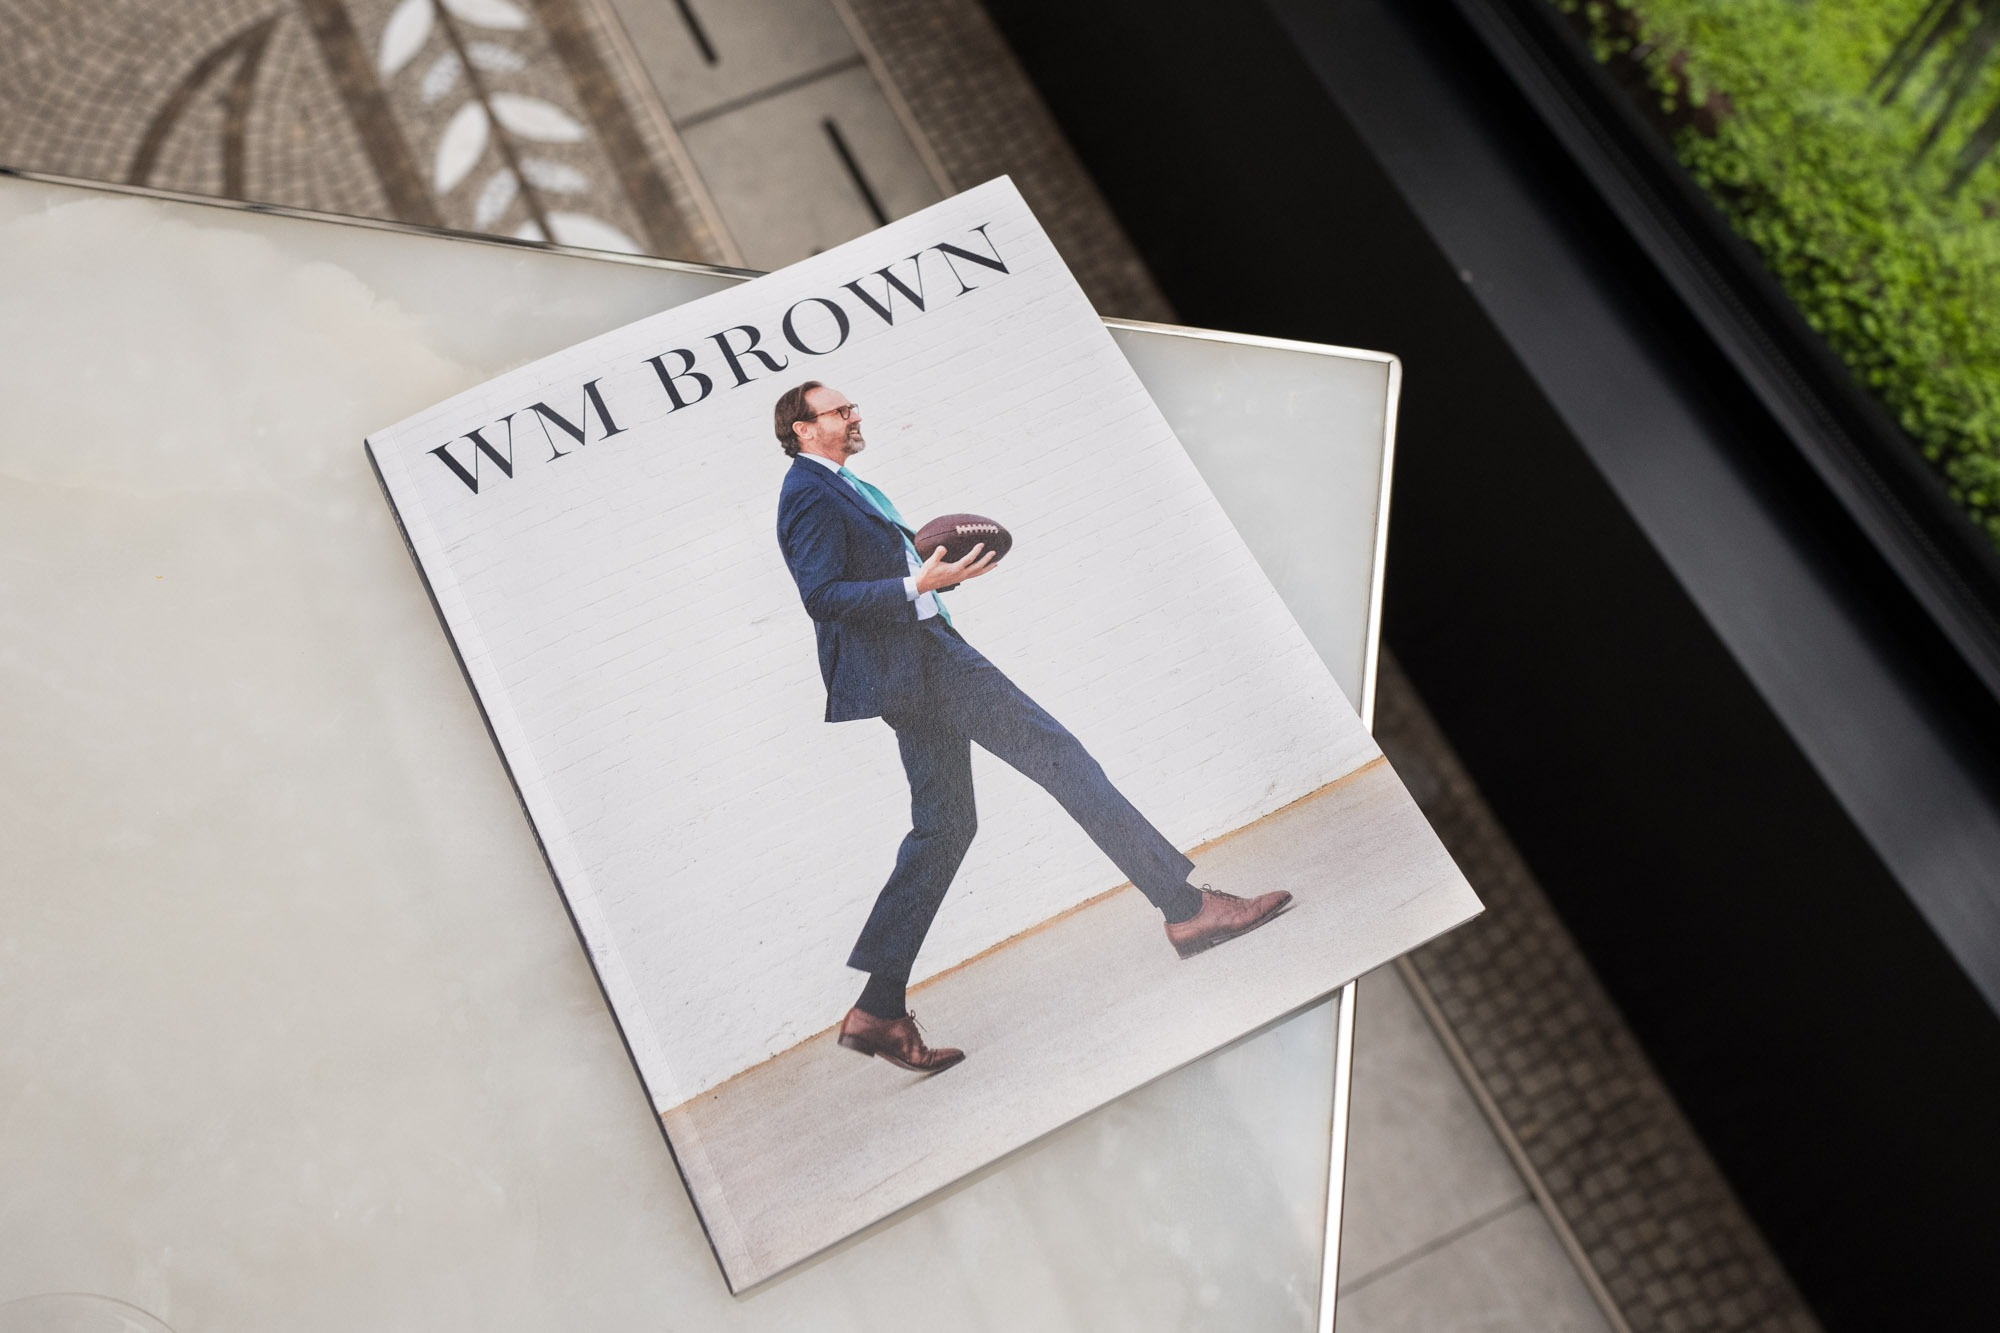 WM BROWN Magazine - Volume 02, Spring 19